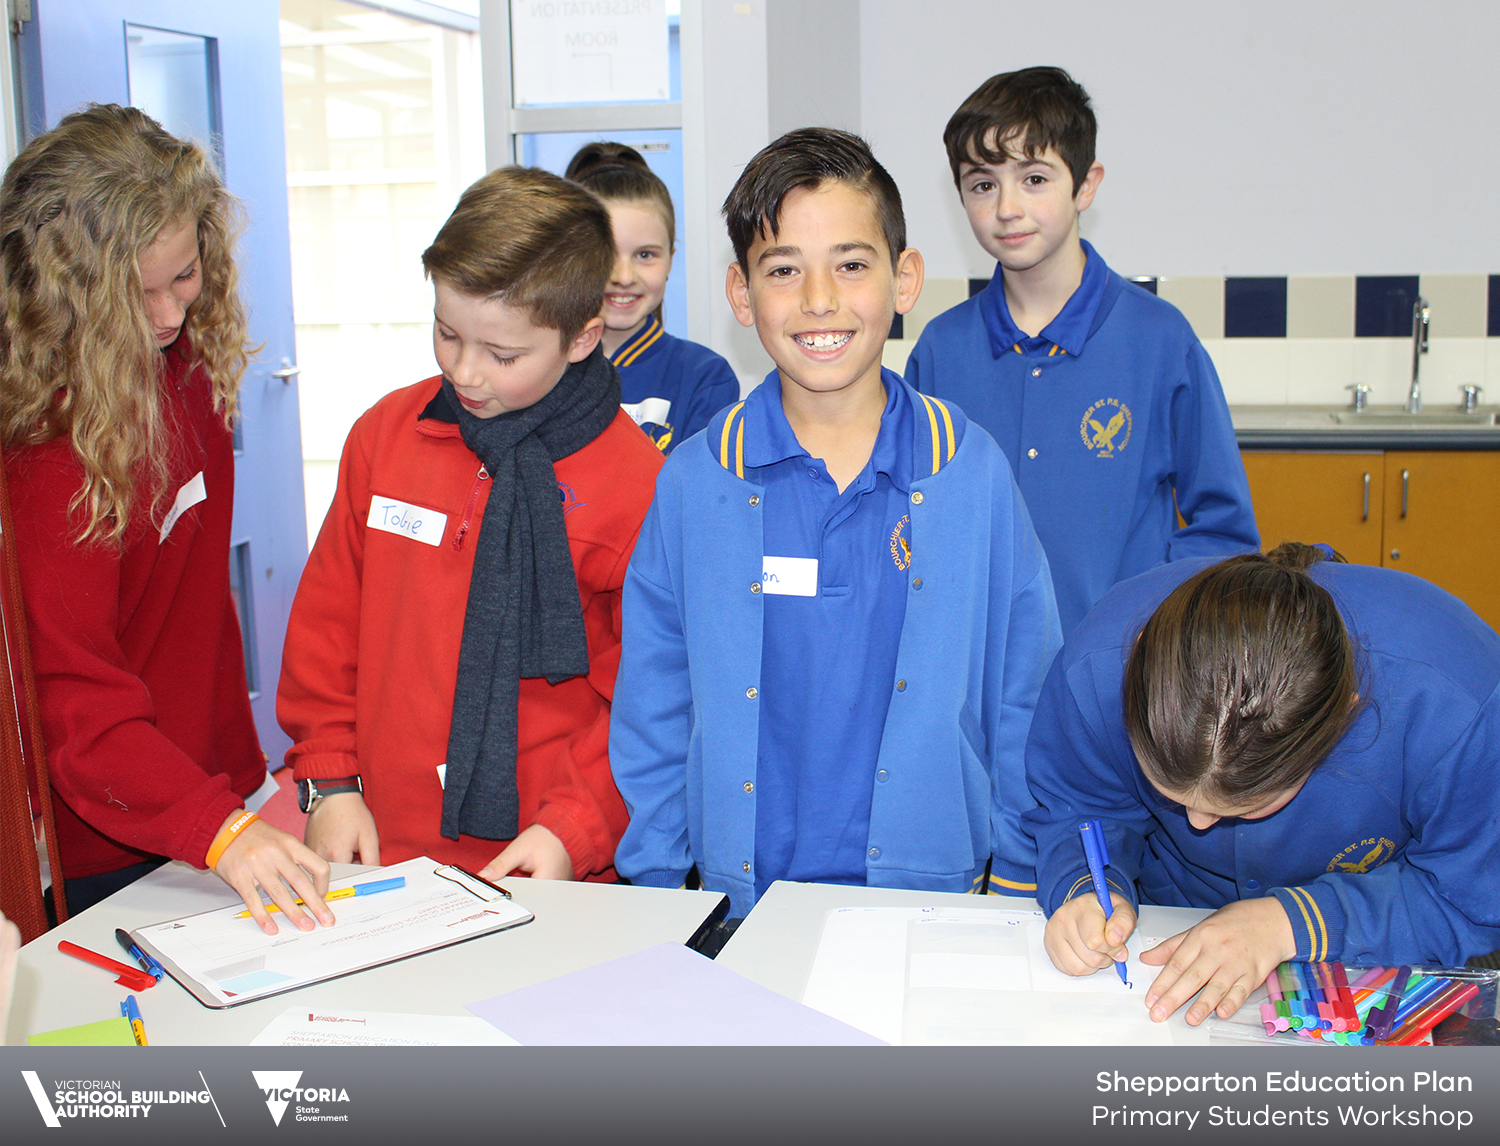 Smiling boy, primary students signing in at workshop